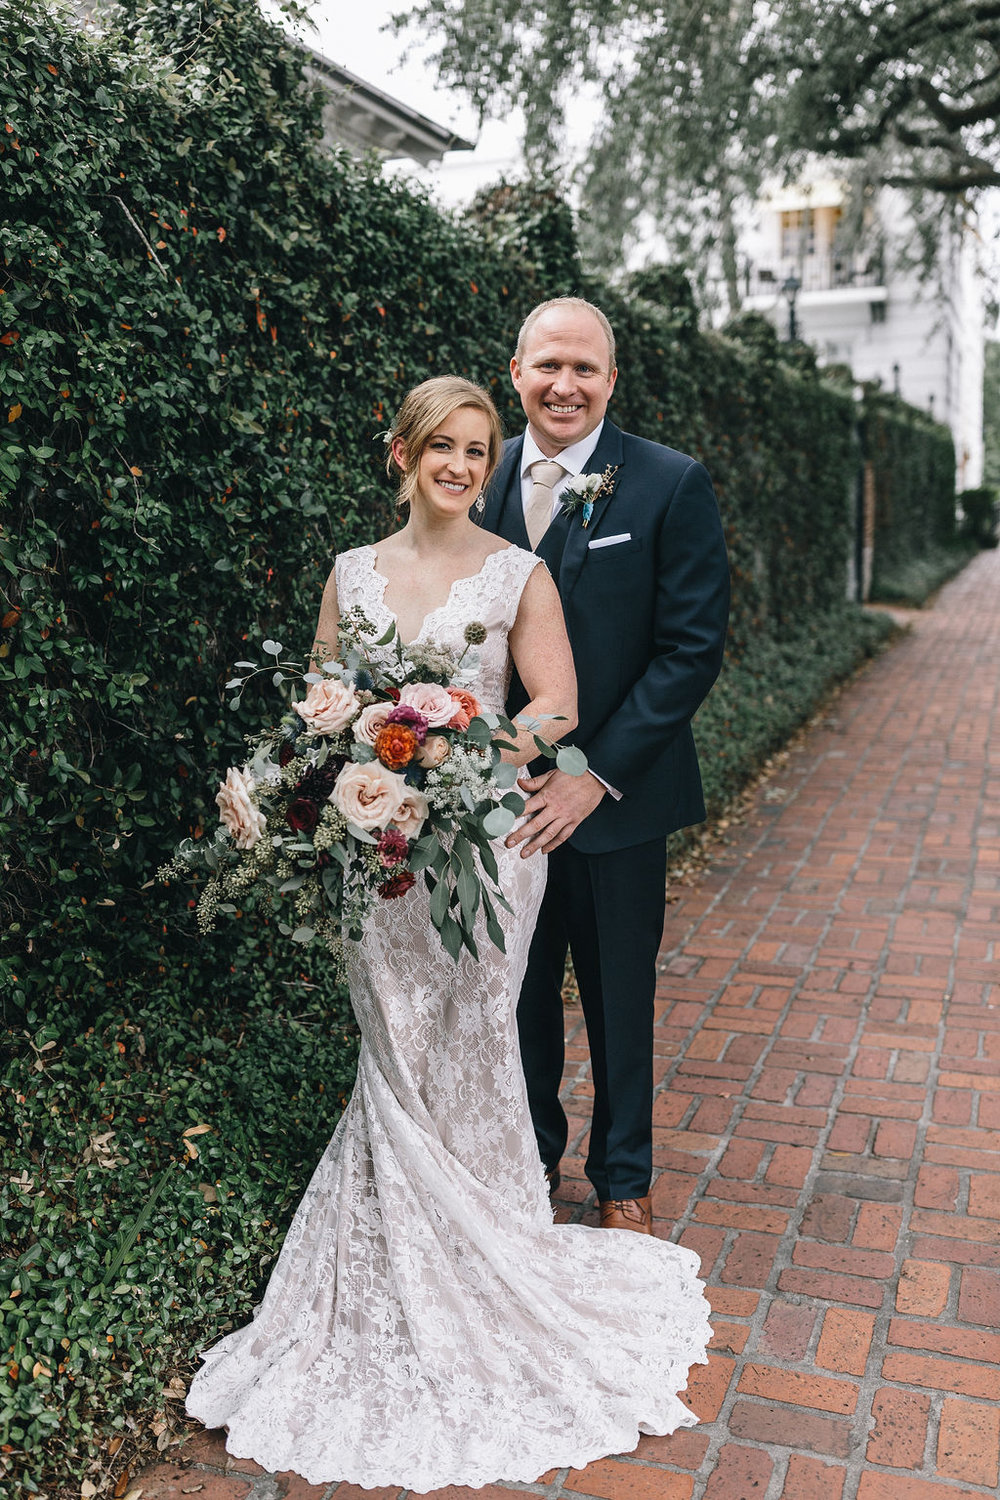 ivory_and_beau_savannah_bridal_shop_ivory_and_beau_couple_regan_and_brian_mackensey_alexander_photography_charles_h_morris_center_wedding_savannah_wedding_planner_savannah_florist_16.jpg